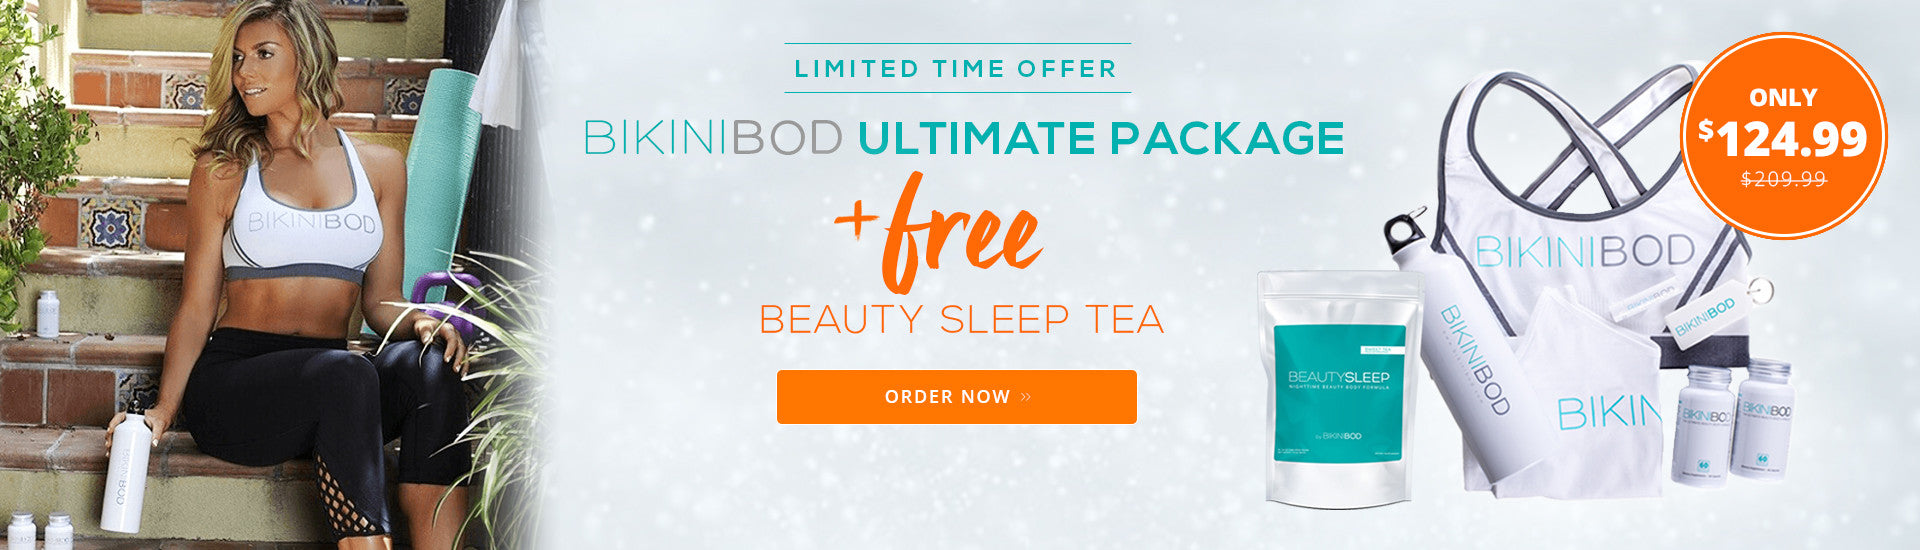 BikiniBOD Ultimate Package plus Free Beauty Sleep - Limited Time Offer!